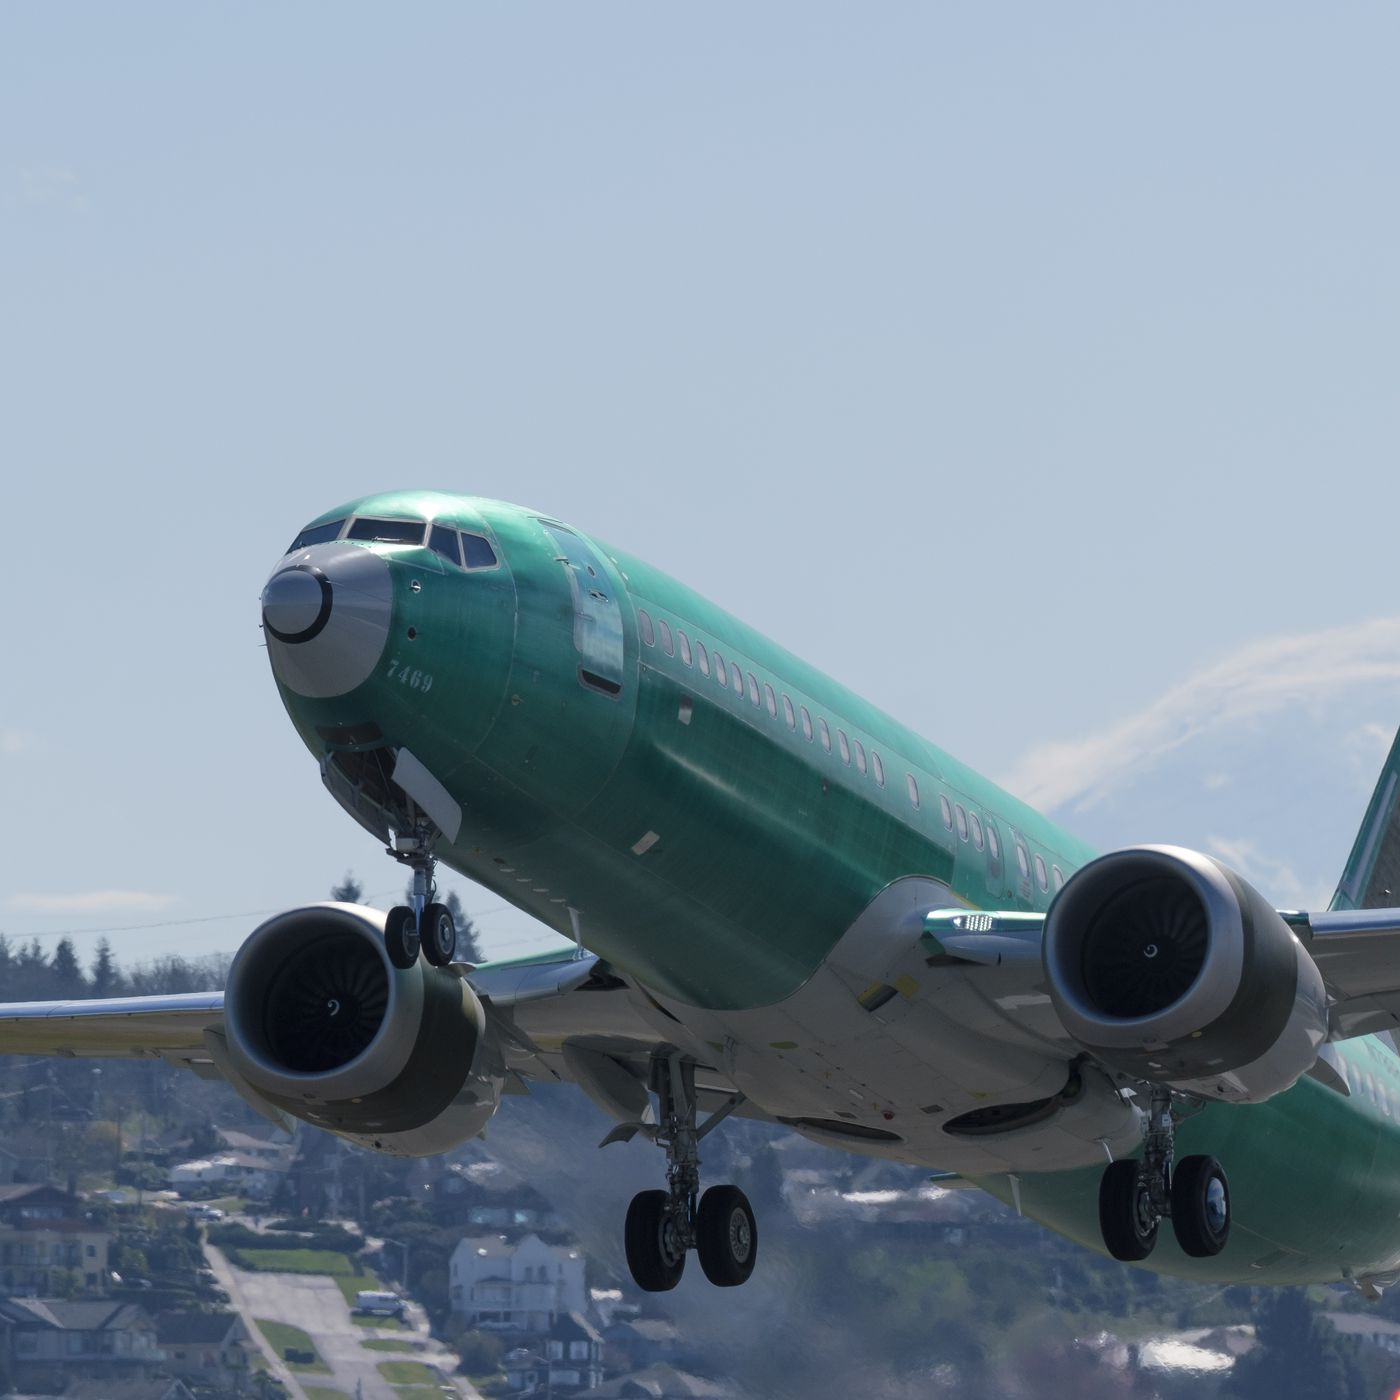 theverge.com - Andrew Liptak - Regulators have 'tentatively approved' a software fix for Boeing's 737 Max airplane